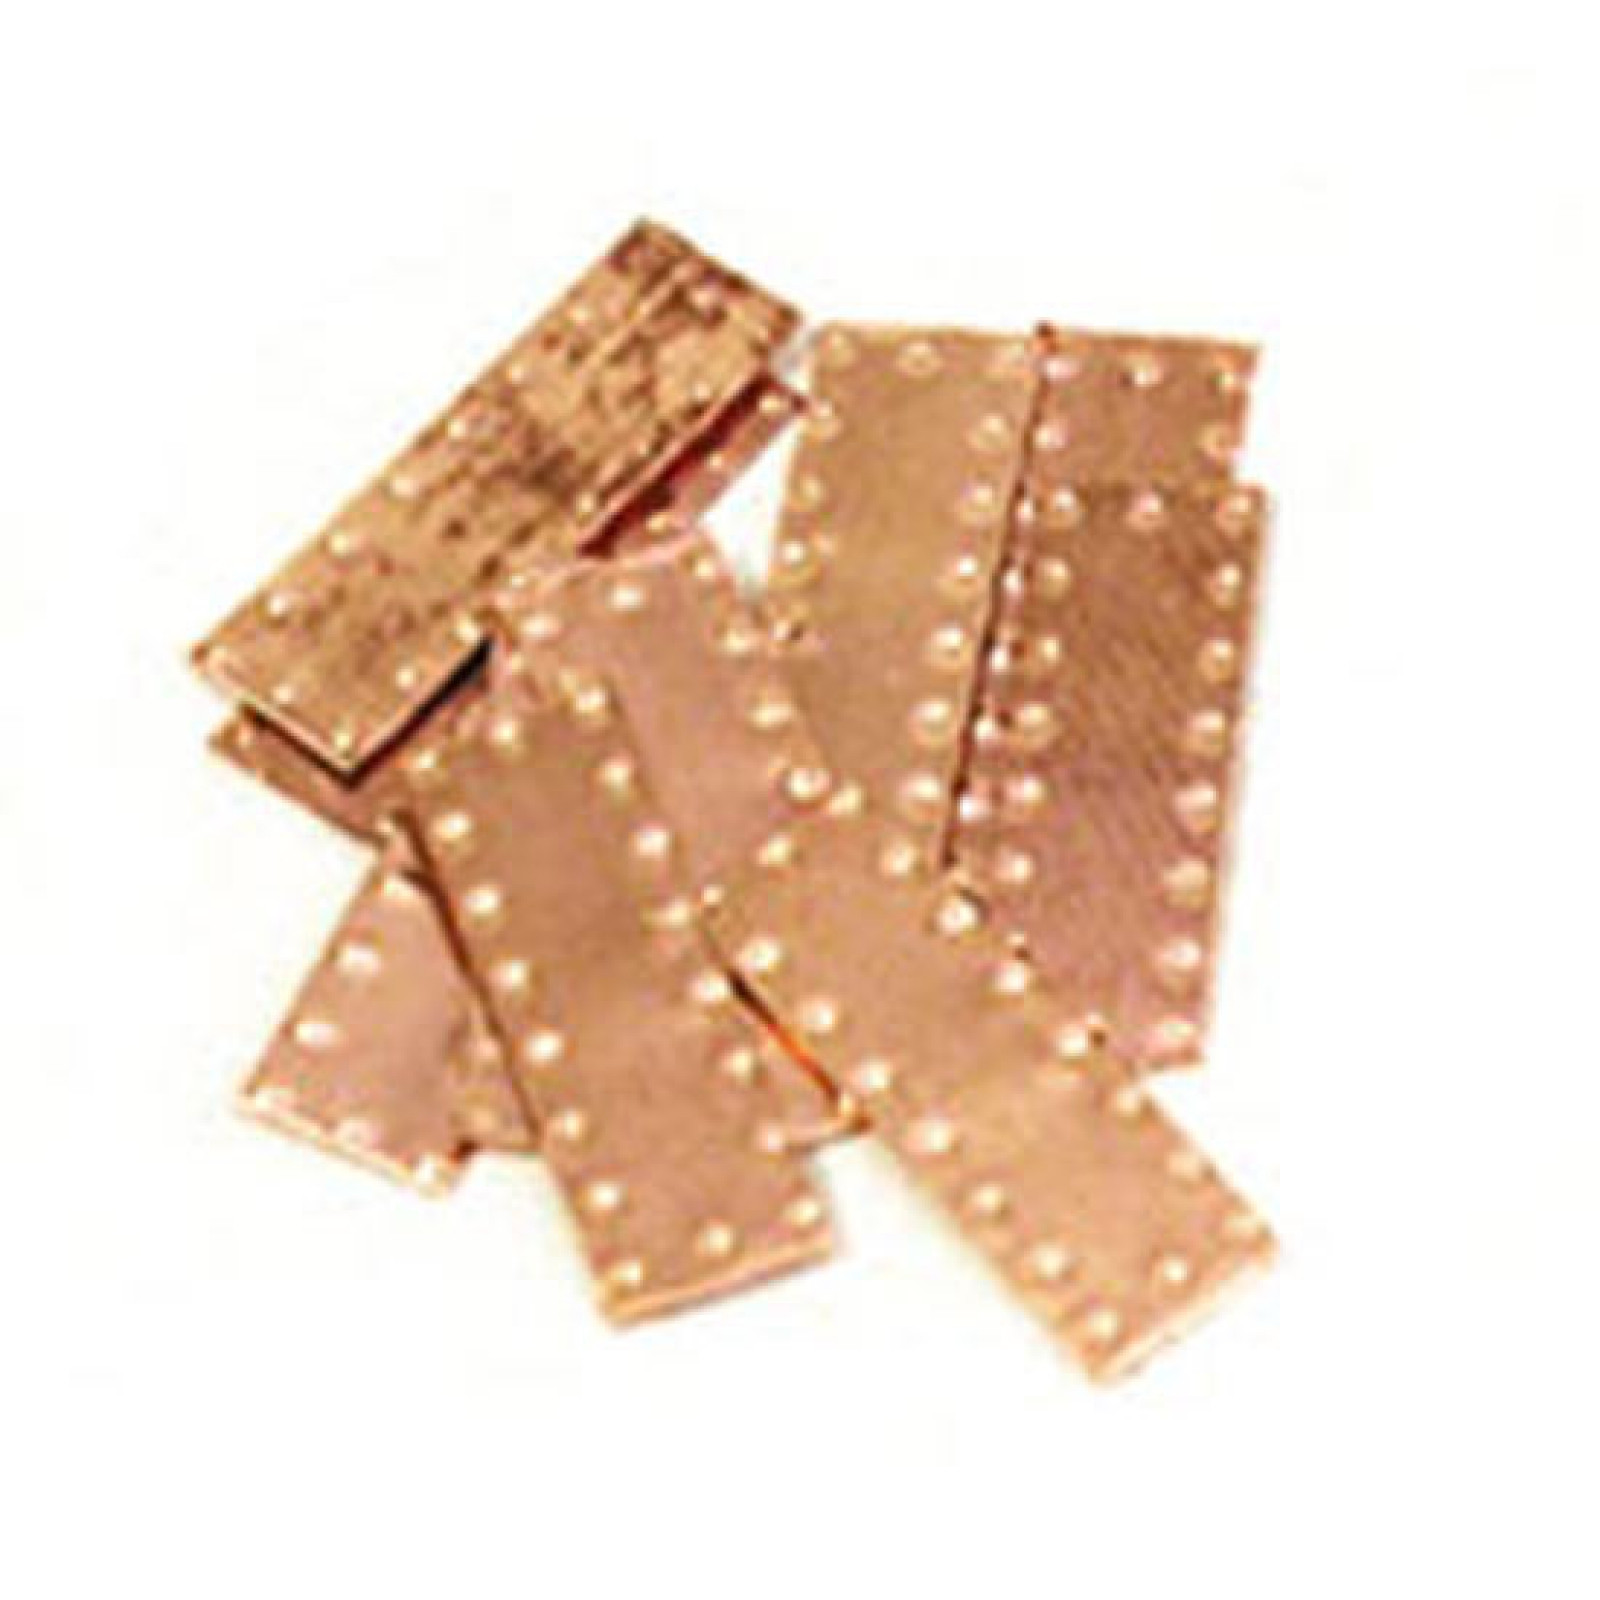 SM DIMPLE COPPER PLATES (6 X 12MM) 50/PK